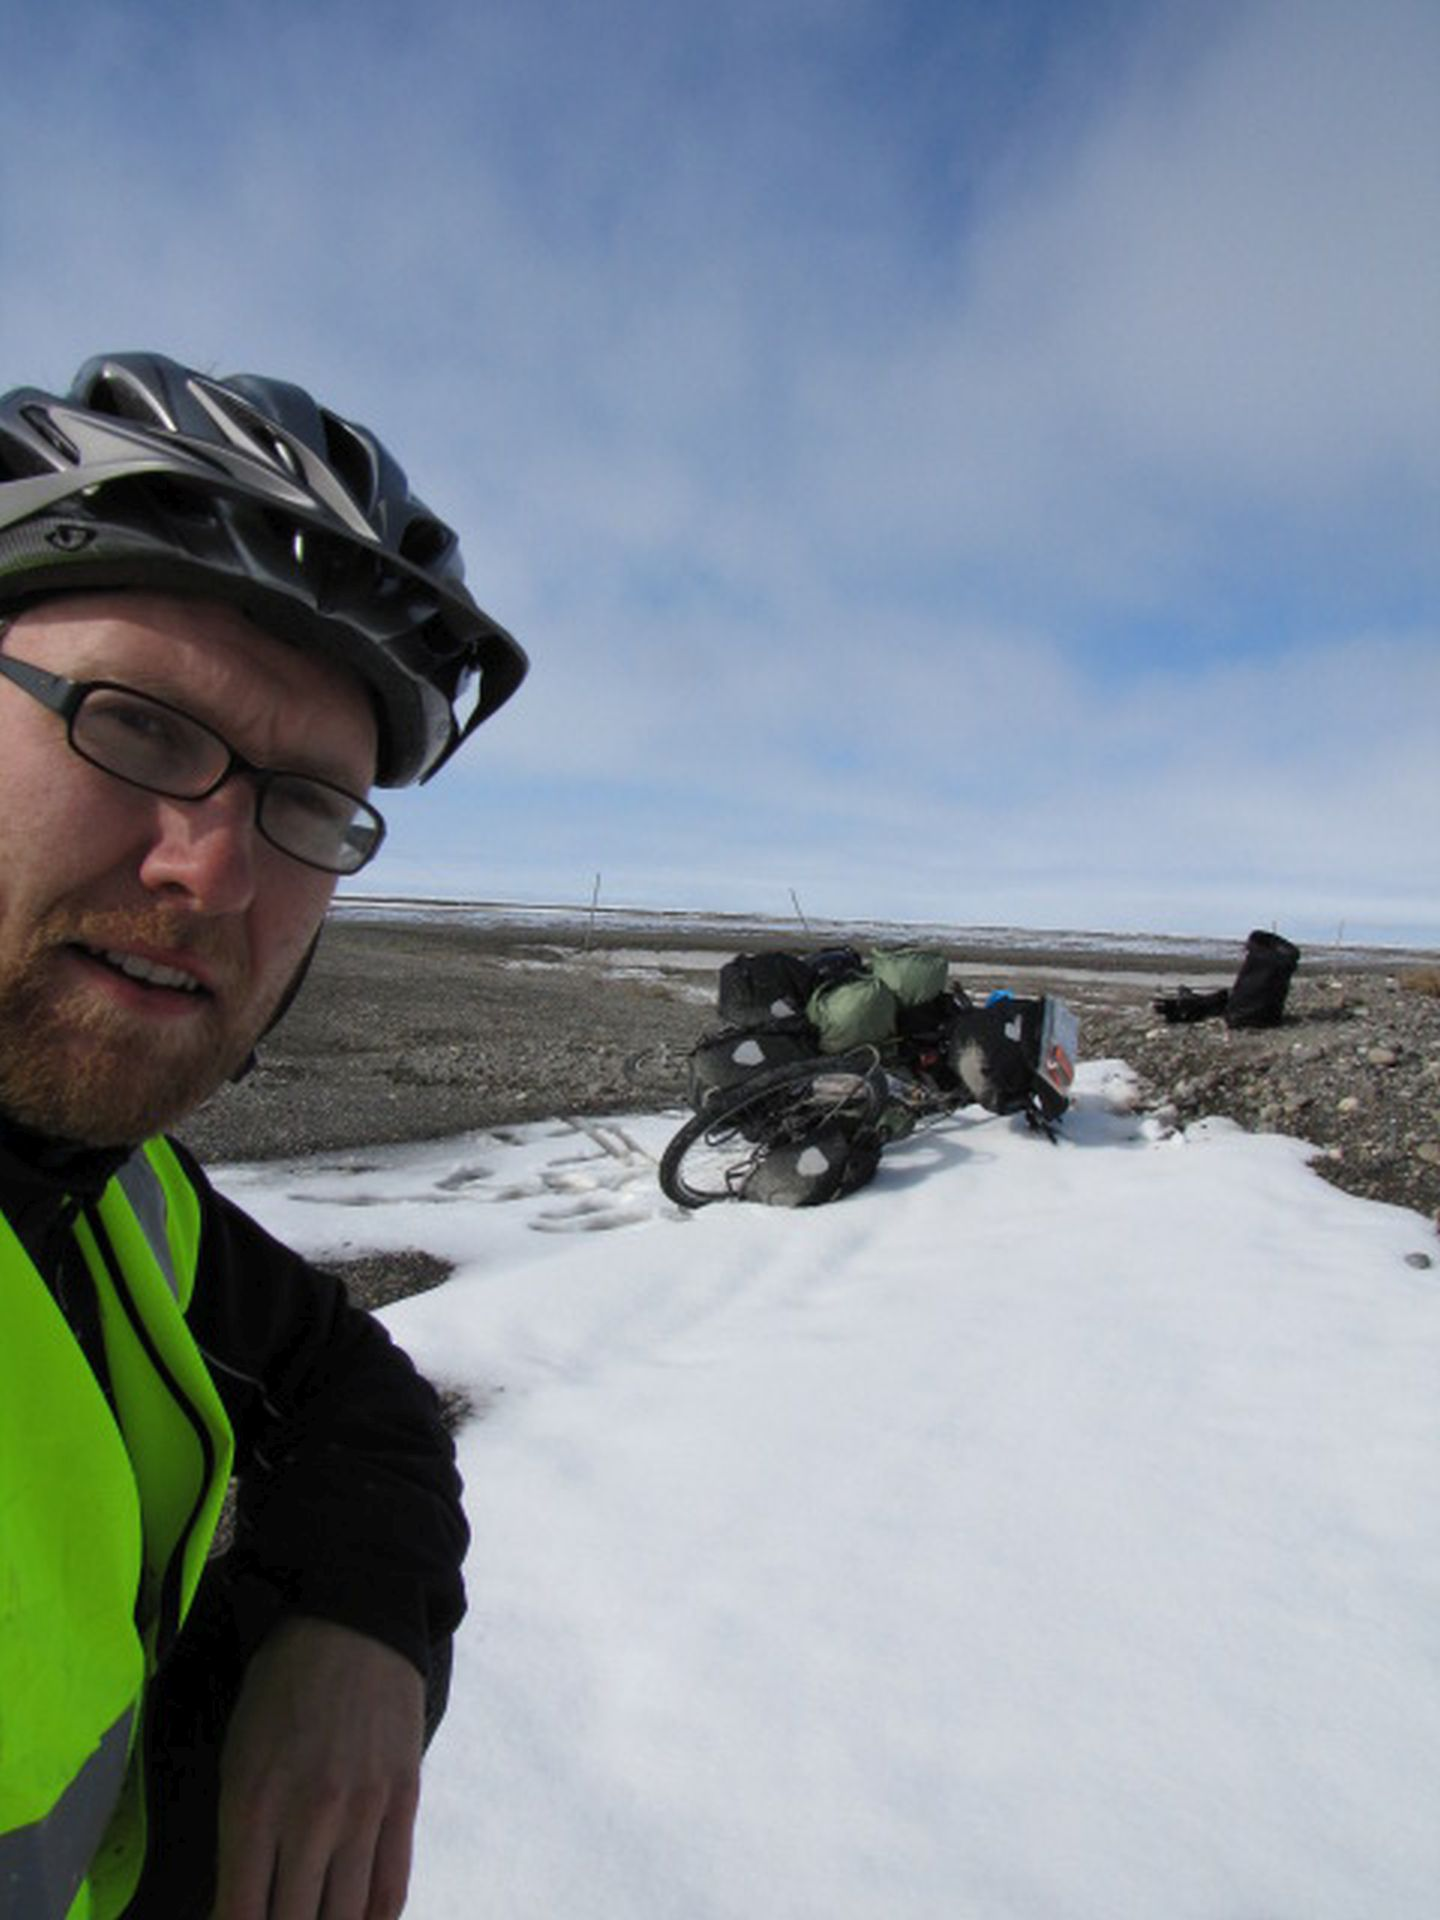 Bike parking, Arctic-style - Who says I can\'t park that there?